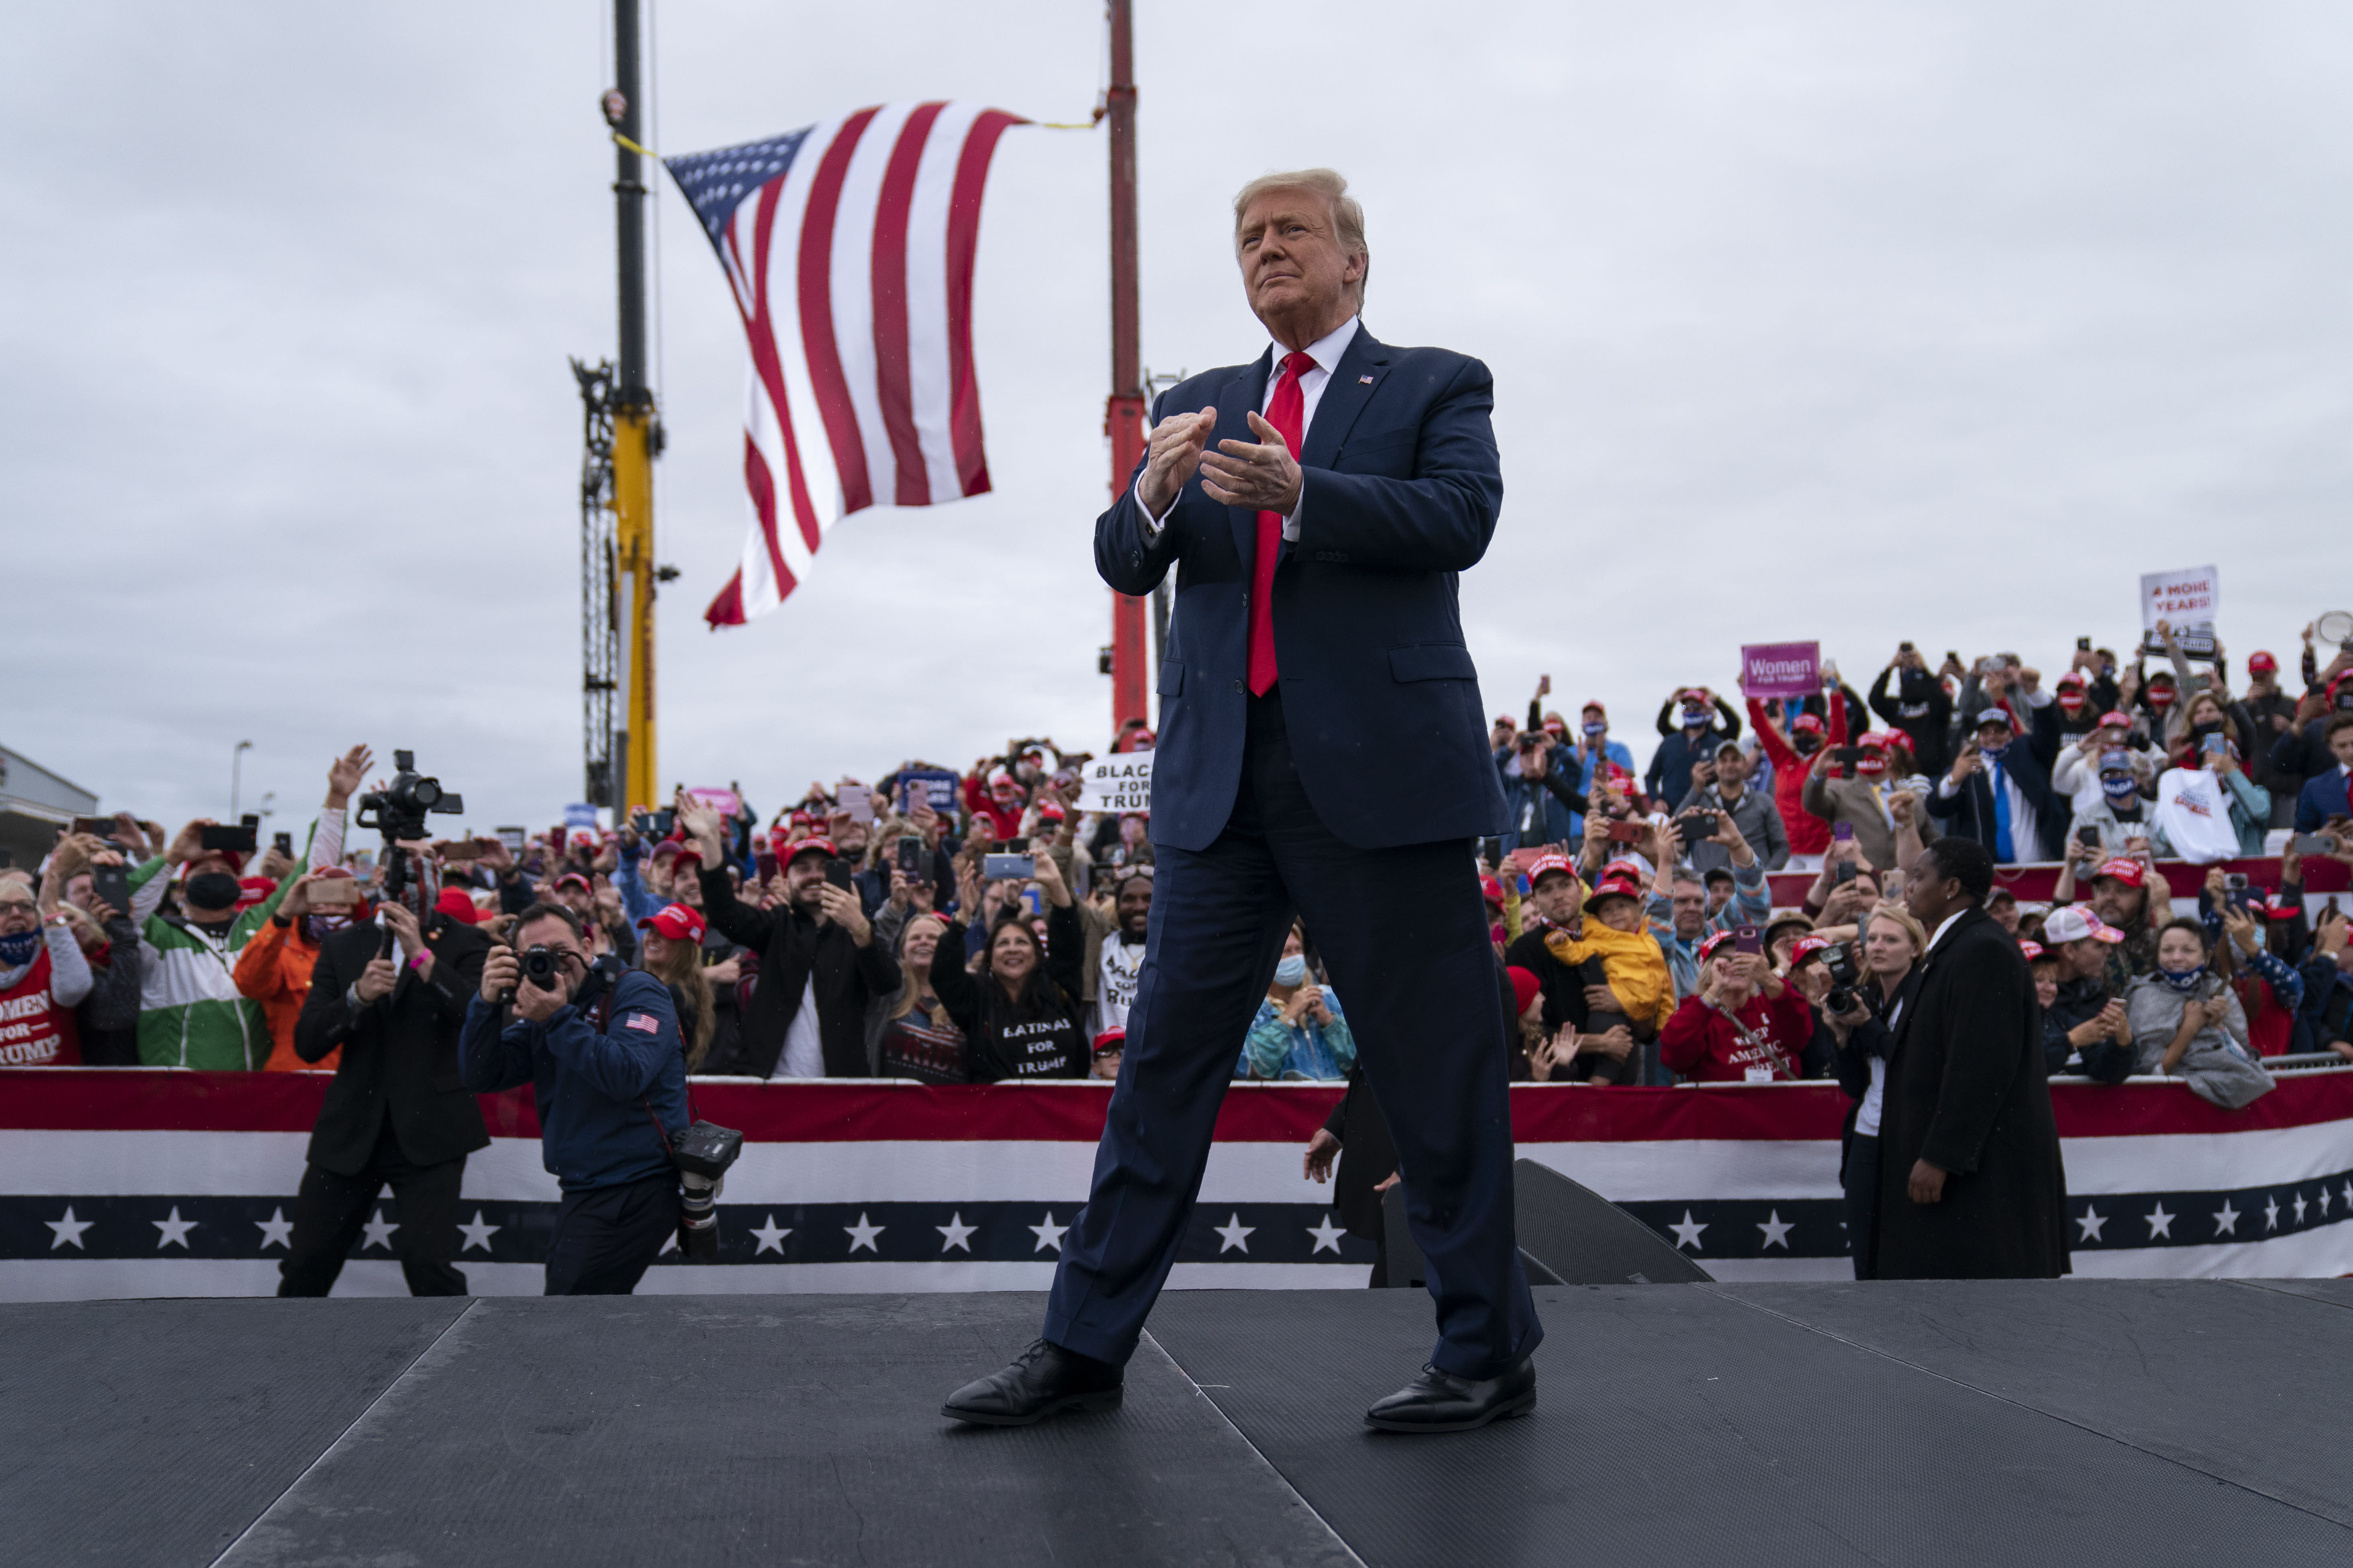 FILE - In this Sept. 10, 2020, file photo President Donald Trump arrives for a campaign rally at MBS International Airport in Freeland, Mich. Campaigns are using different tactics in a pandemic election year unlike any other as candidates try to win over voters in down-ballot races that will determine control of Congress. Trump is setting the tone for his party with big rallies and few masks. (AP Photo/Evan Vucci, File)